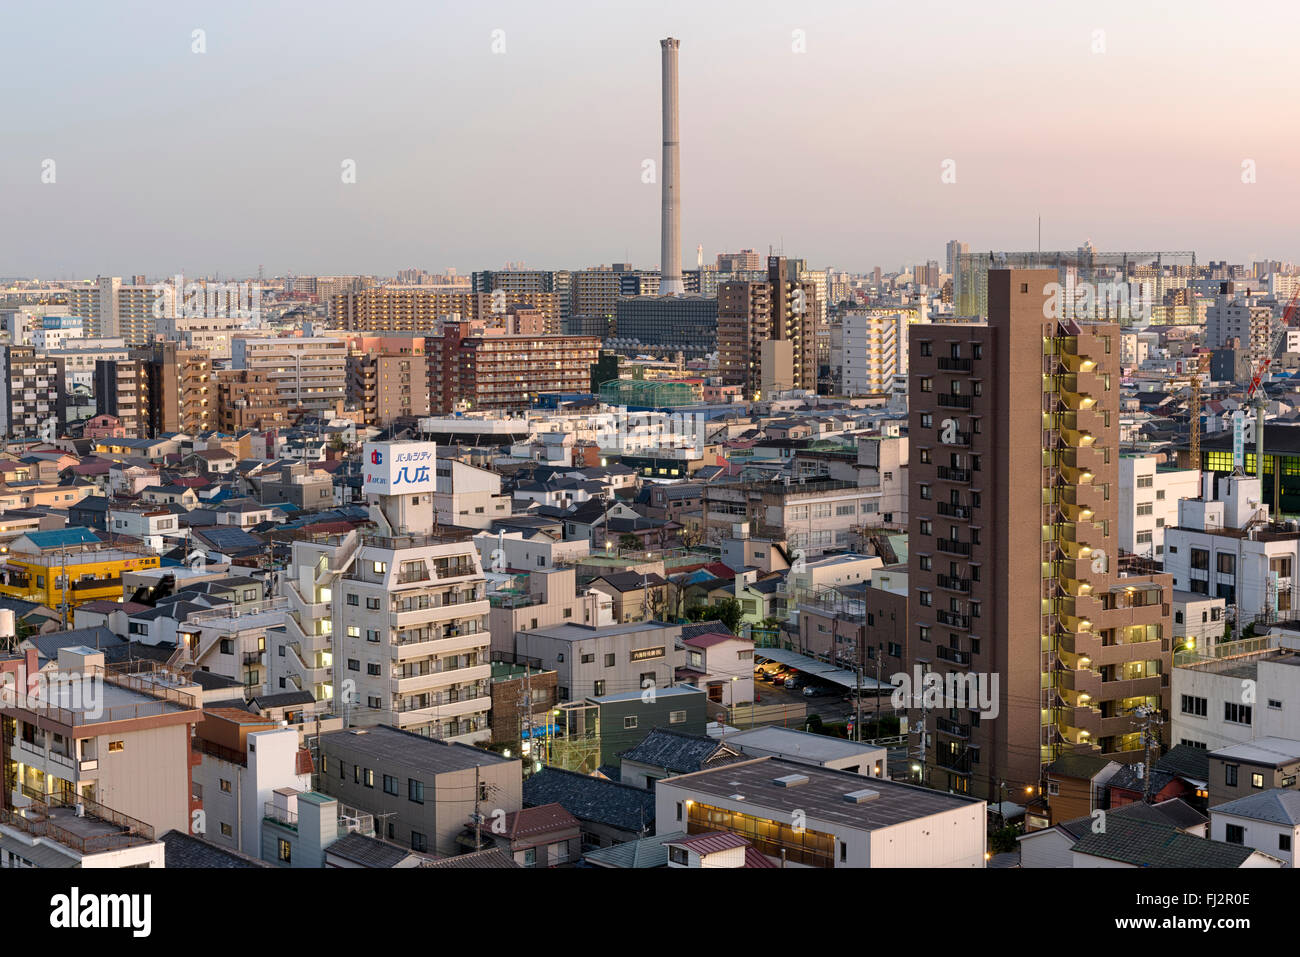 General view of Asakusa skyline in Tokyo, Japan. - Stock Image